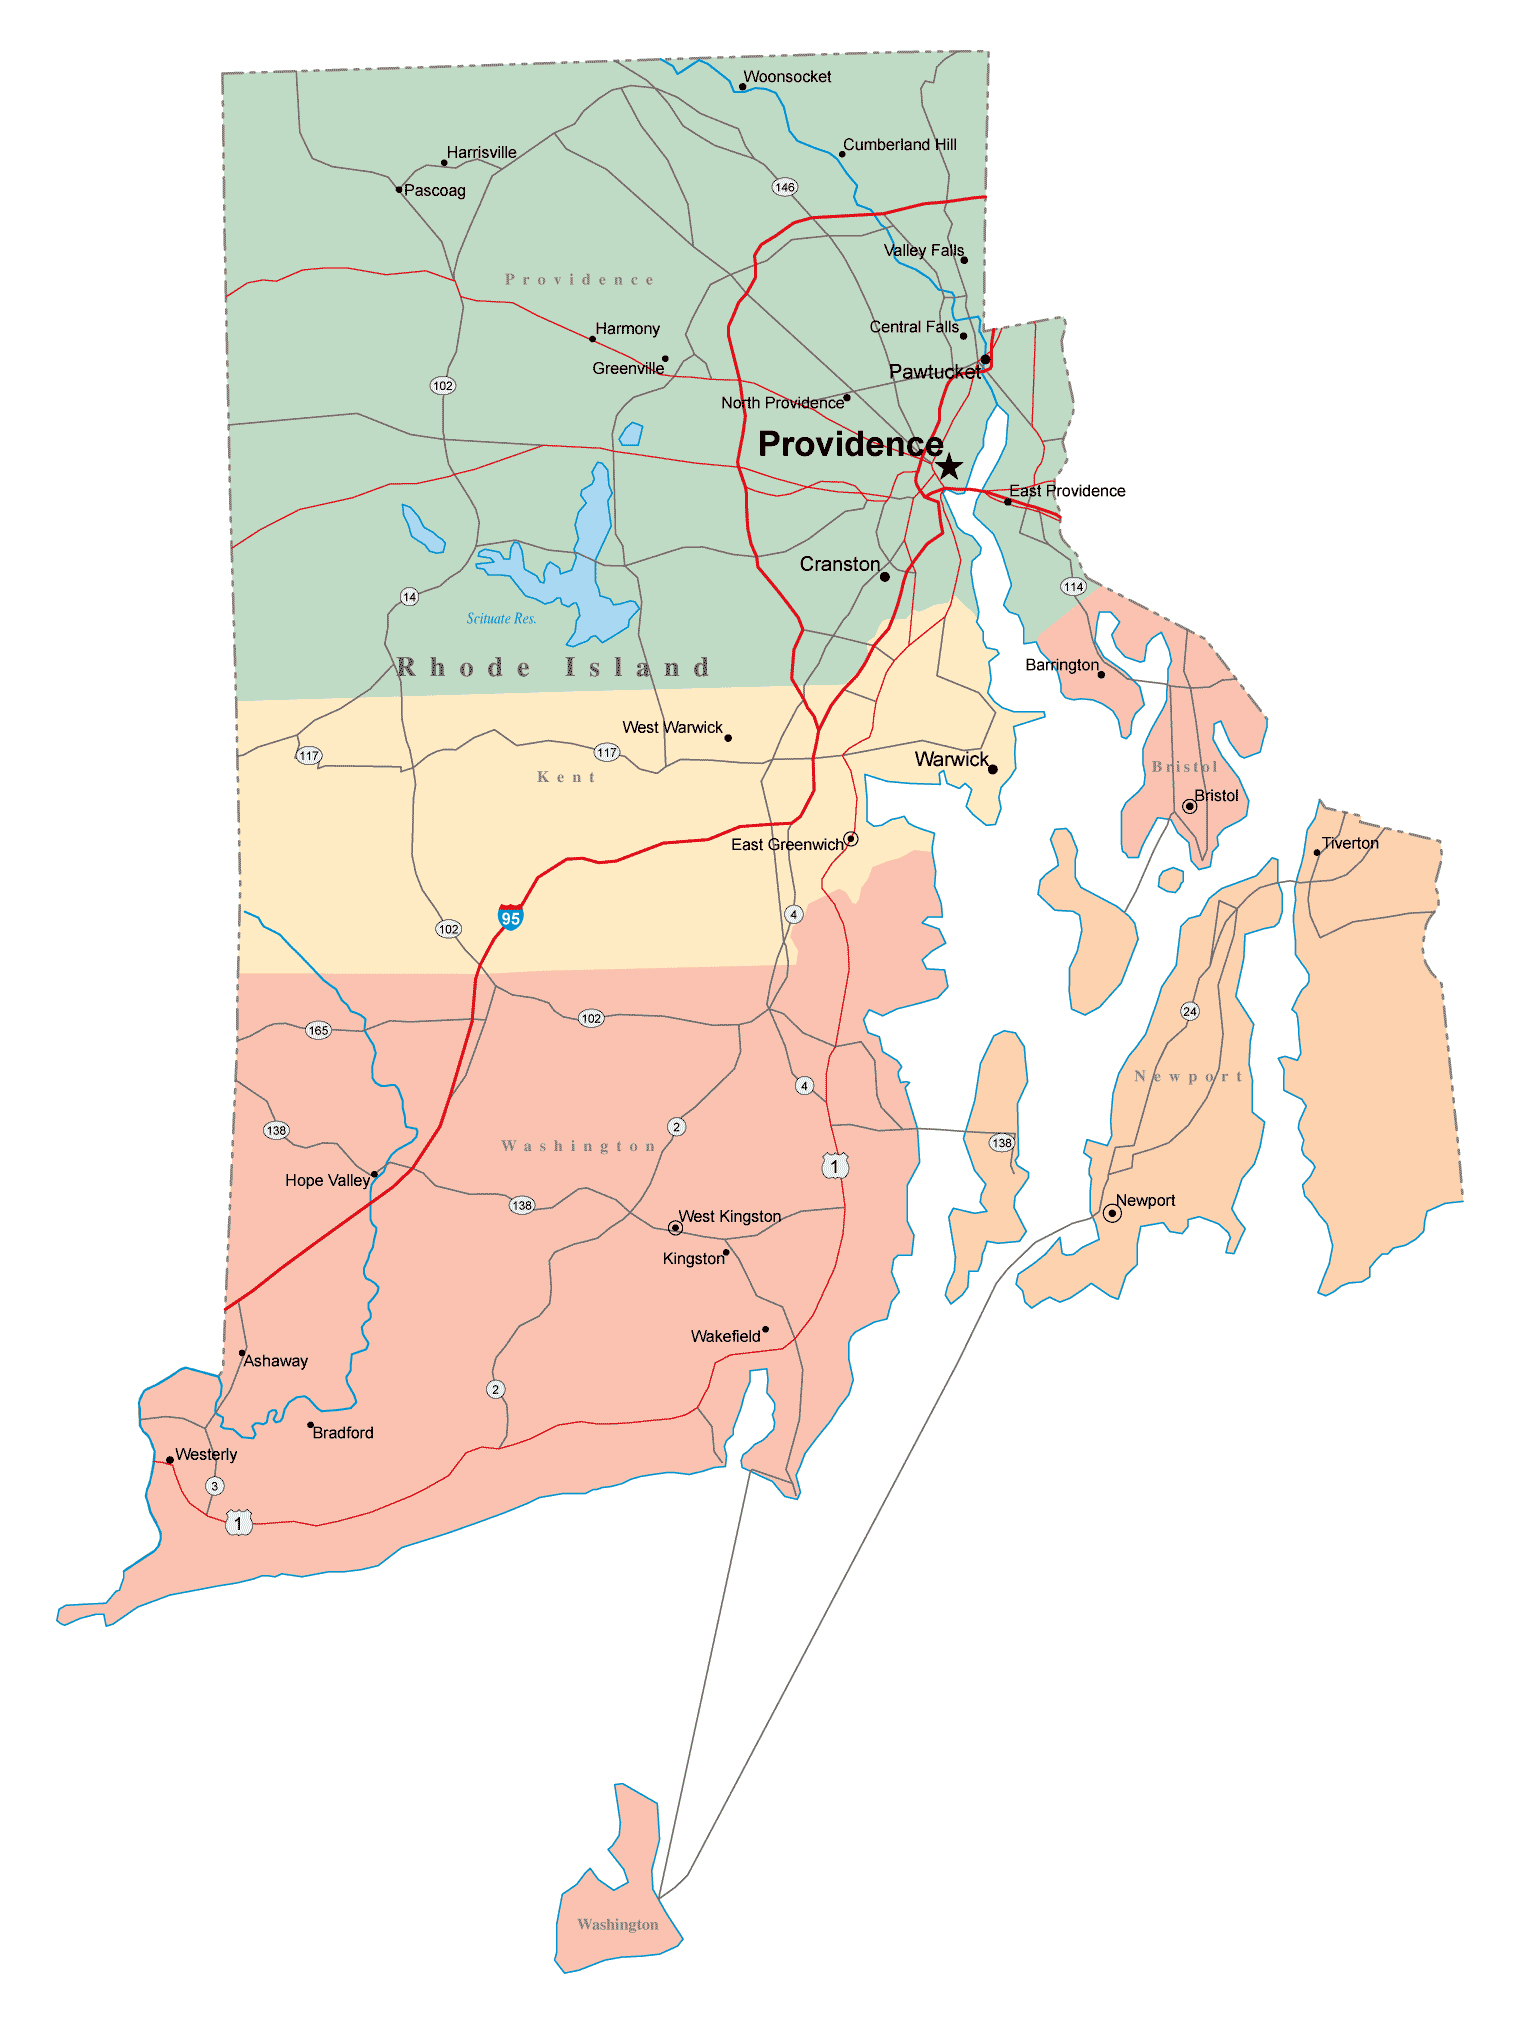 Large Administrative Map Of Rhode Island State With Roads - Rhode island usa map